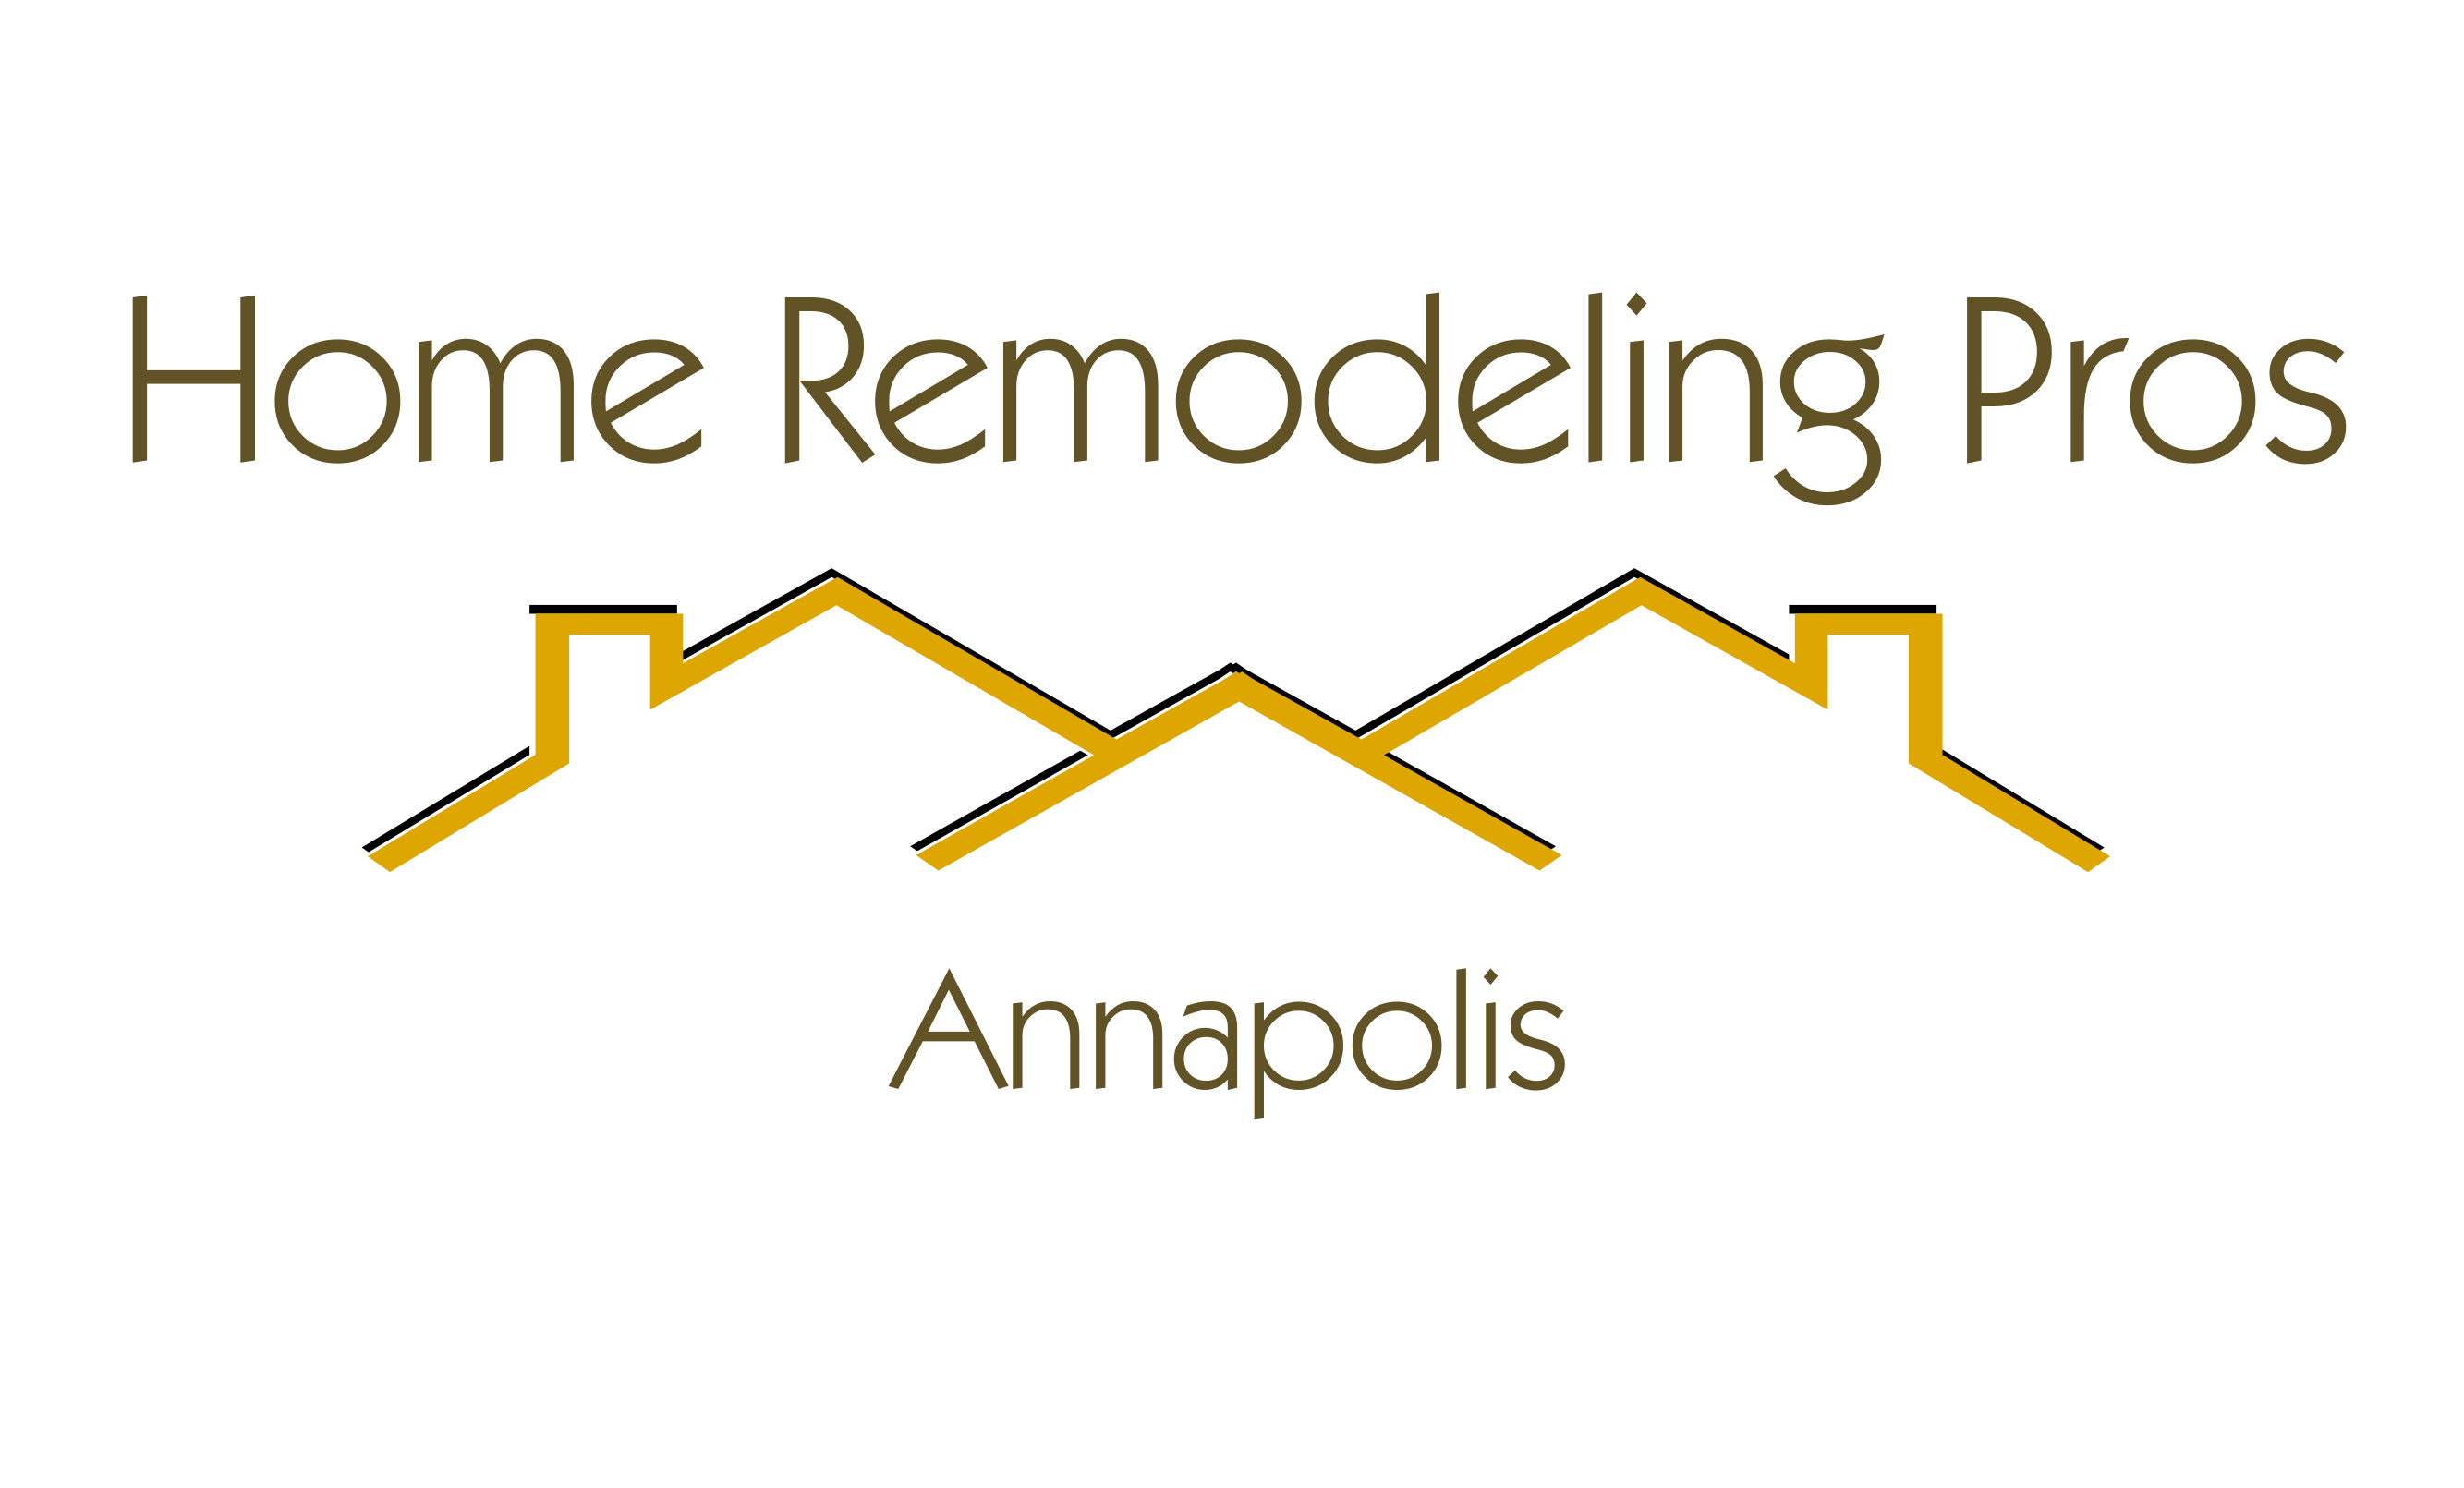 Home Remodeling Pros – Trustworthy Contractor in Annapolis